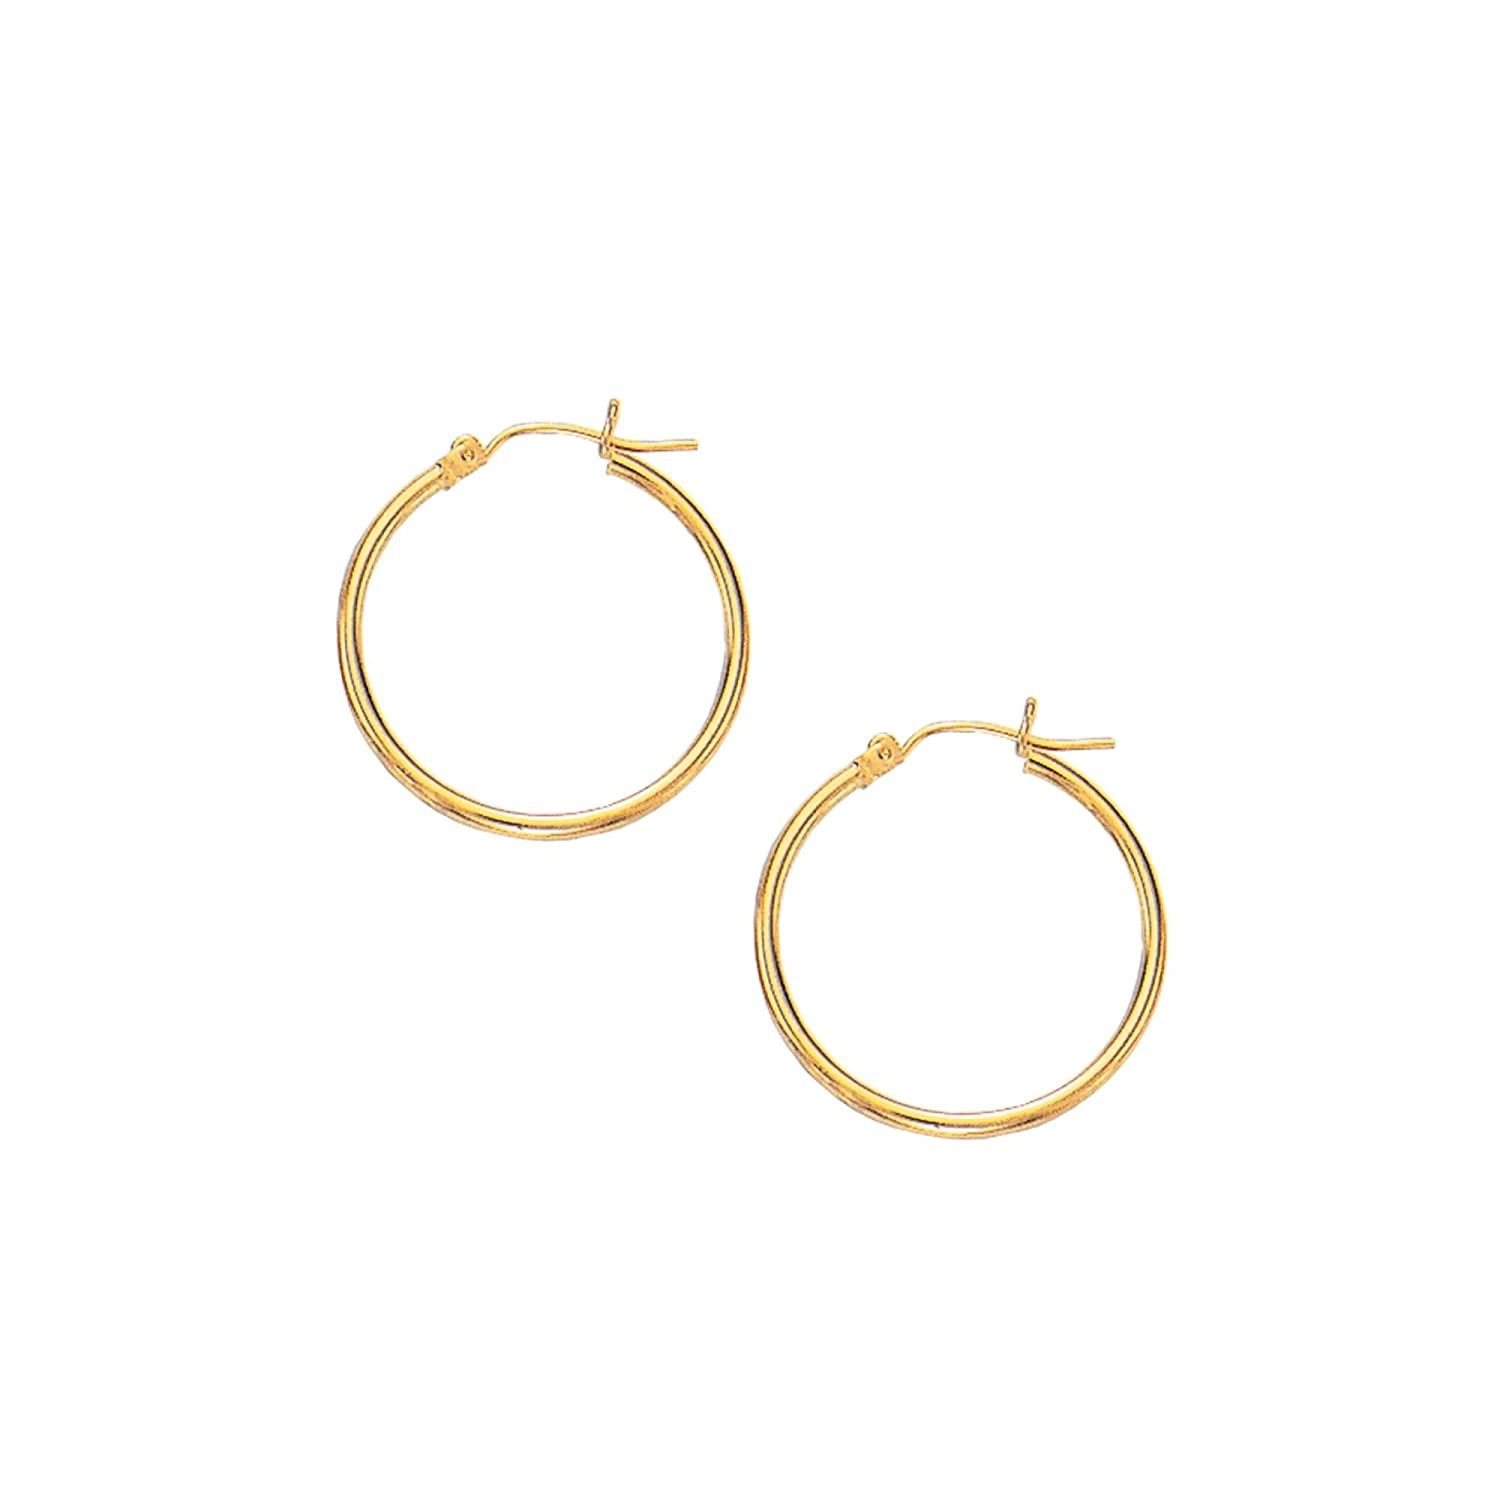 10K Yellow//White Gold Shiny Round Hoop Earring with Hinged Clasp